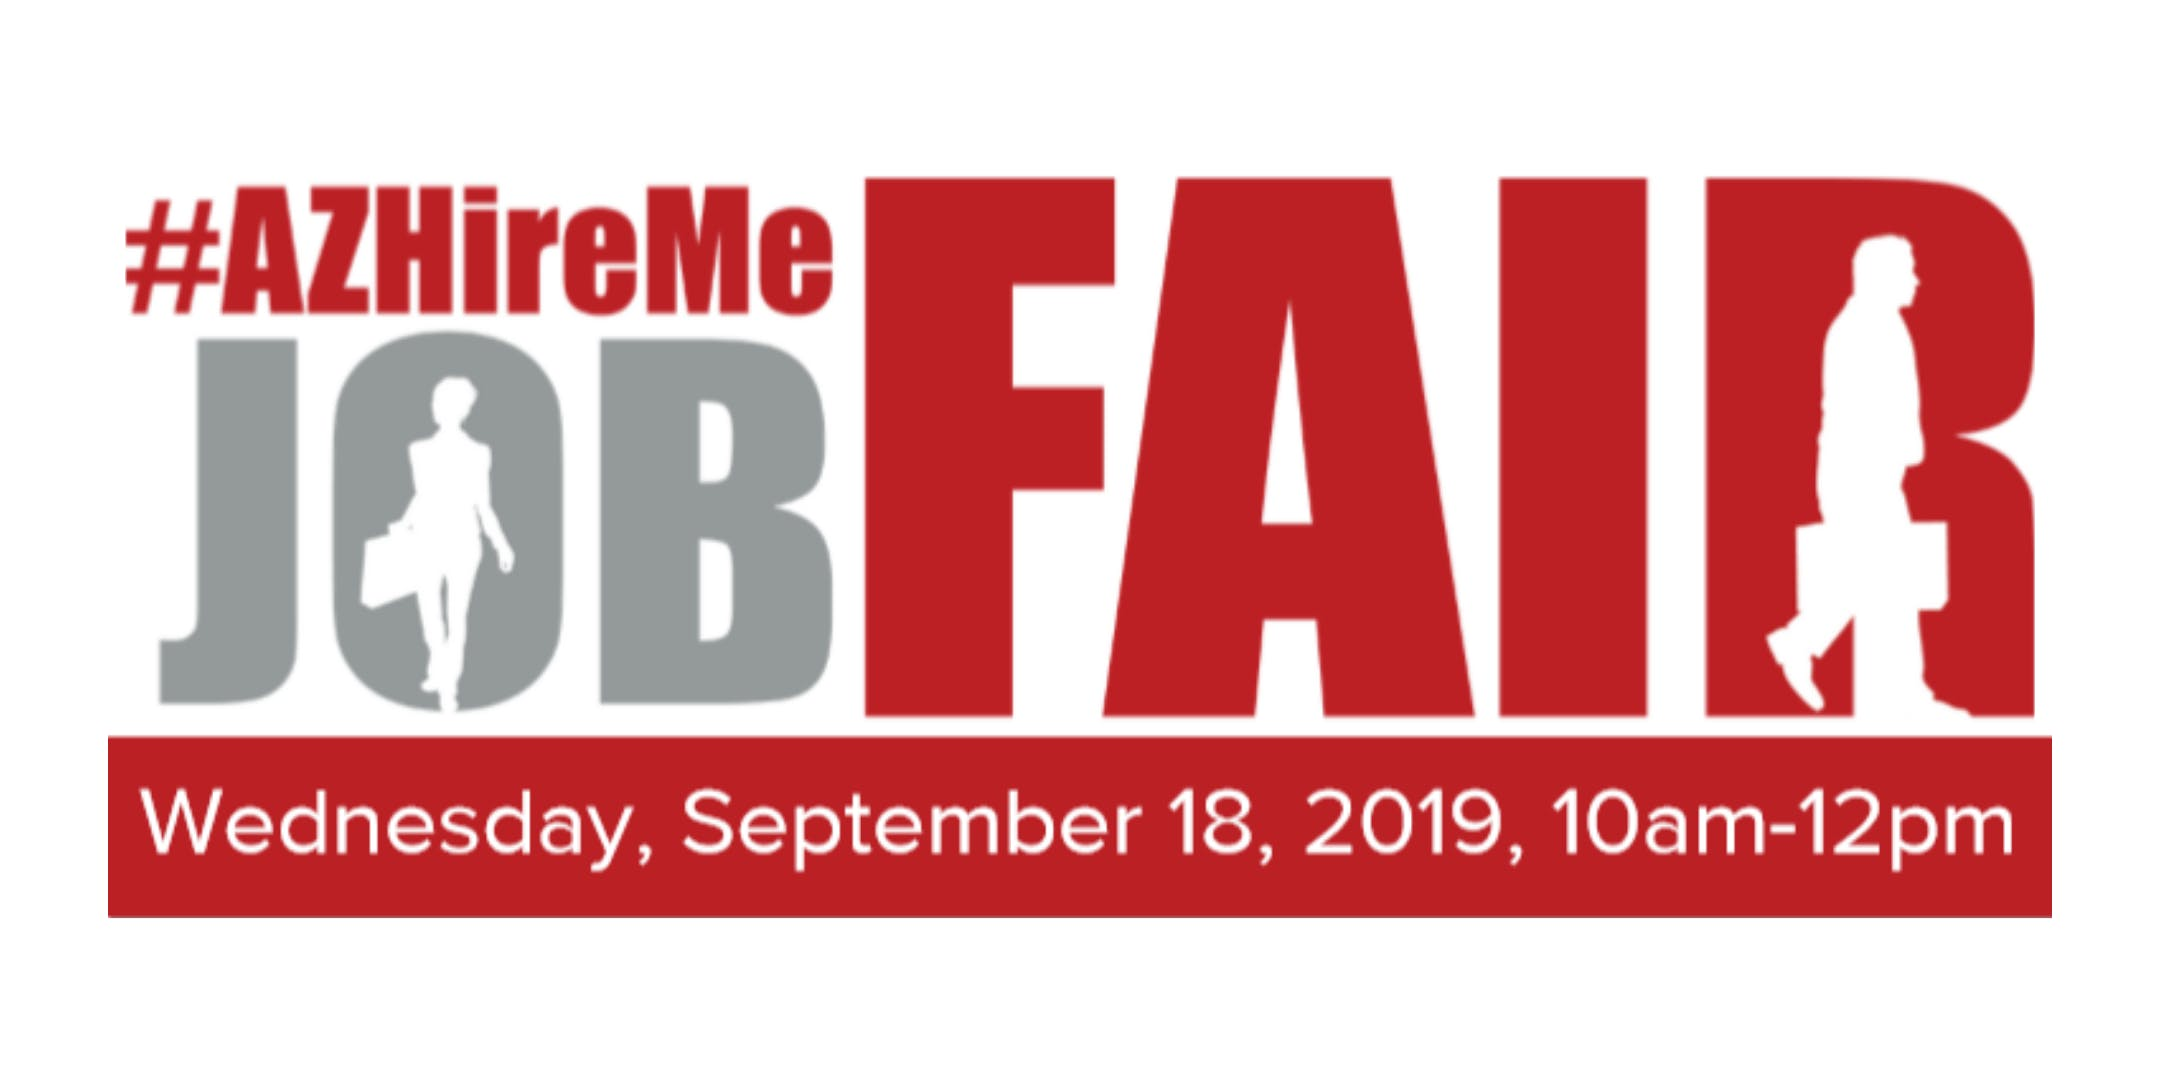 #AZ Hire Me Job Fair| Meet in person with hiring companies| September 18, 2019